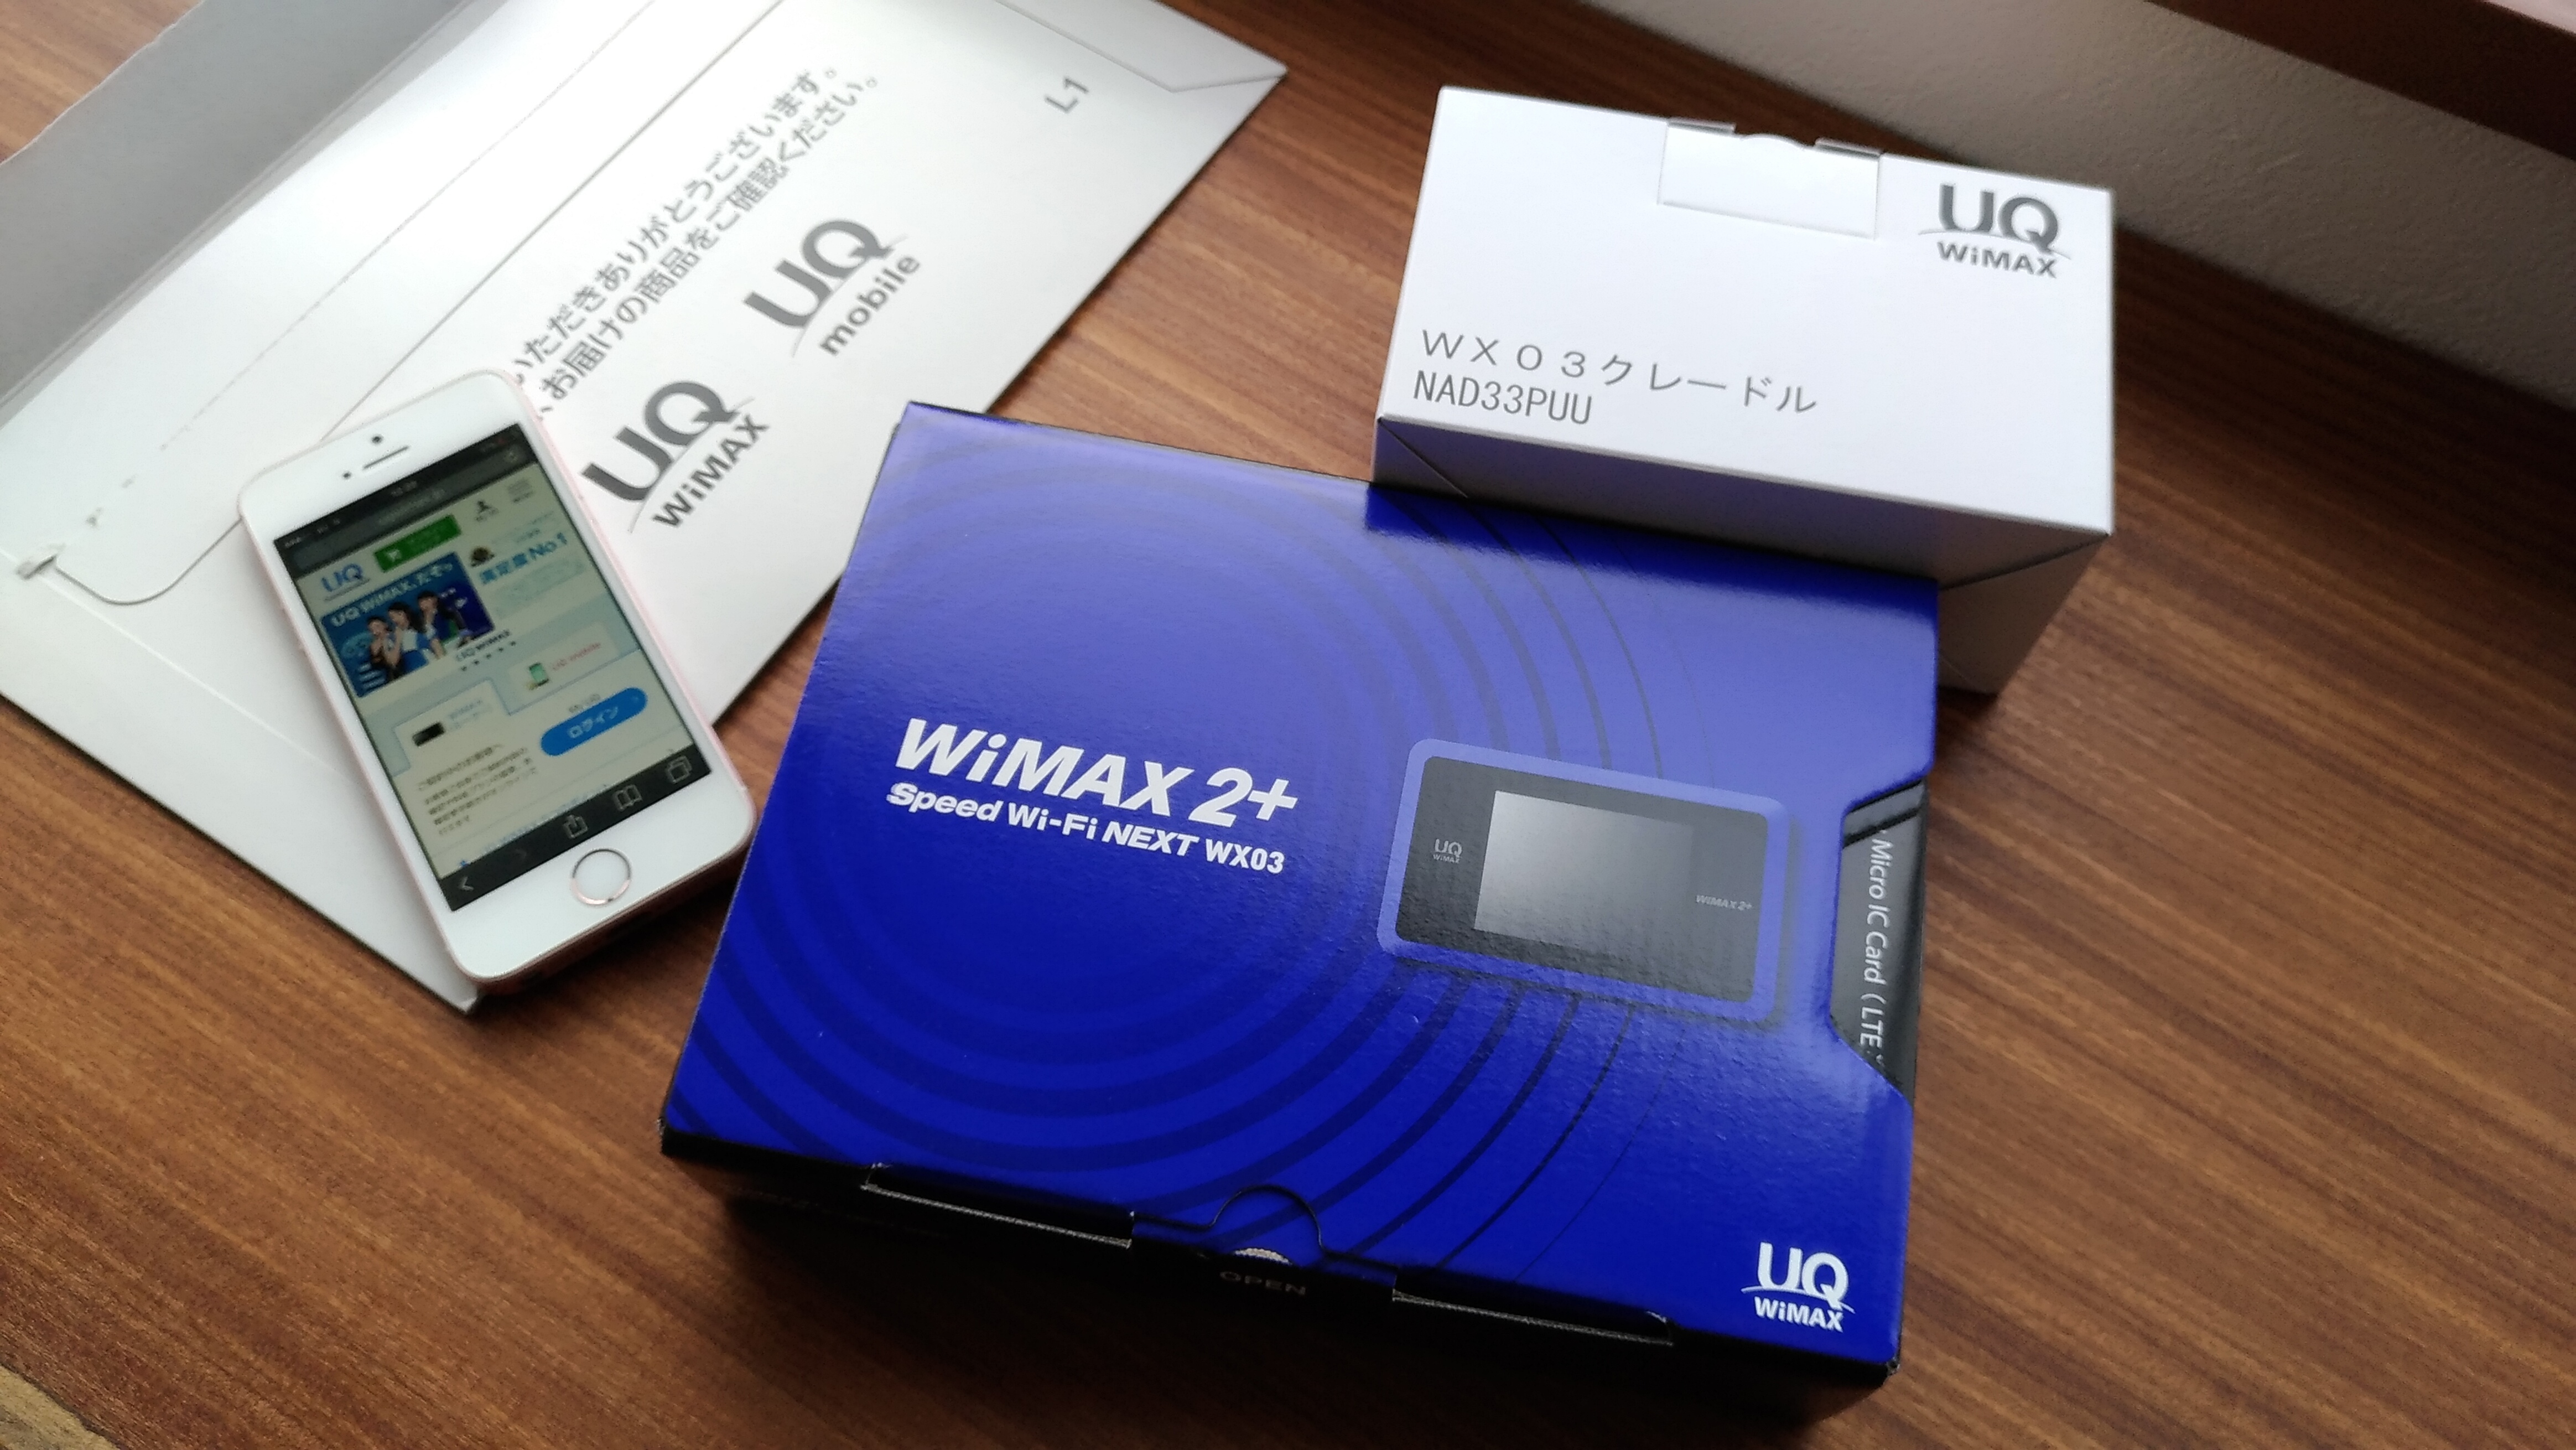 WiMAX 2+ルーター WX03 レビュー